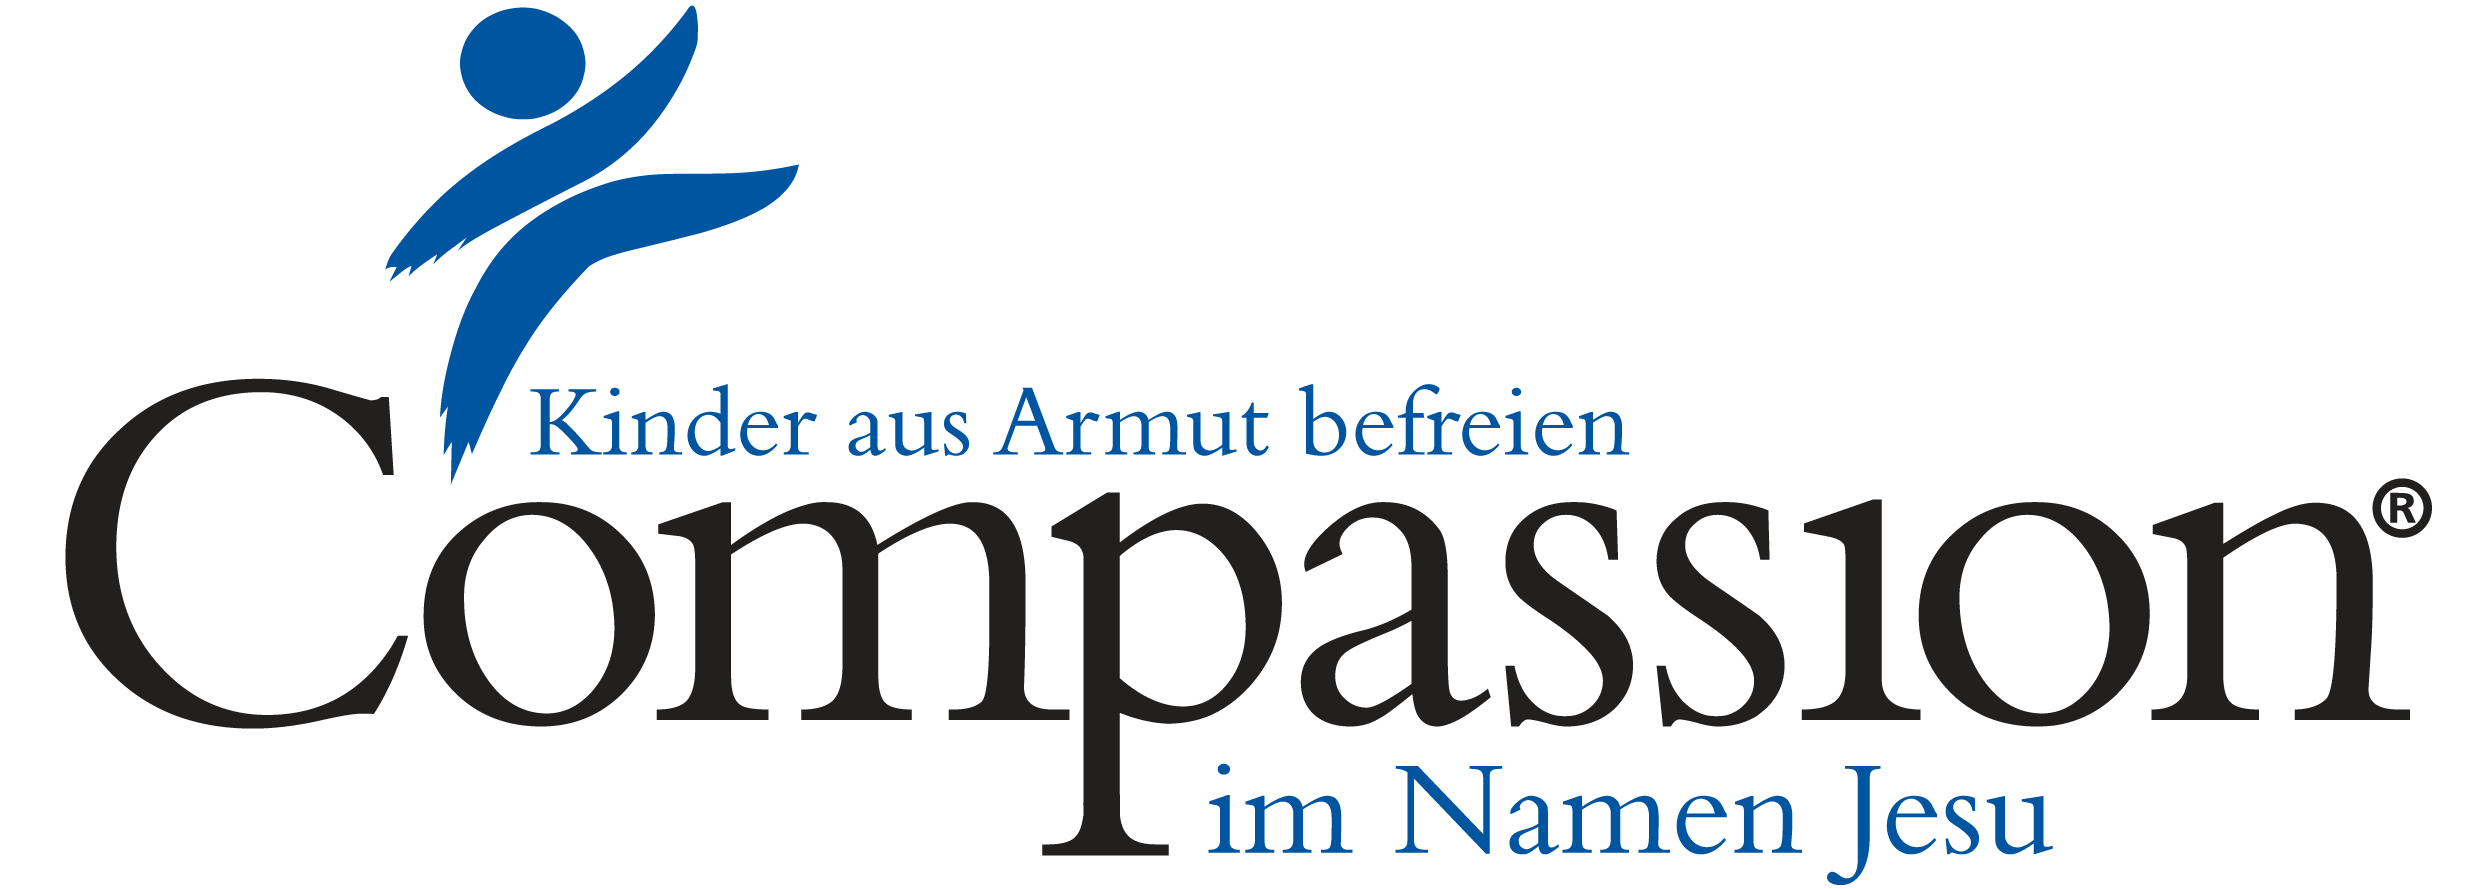 compassion_logo_mitfarbe_und_tagline_gross_transparent_.png